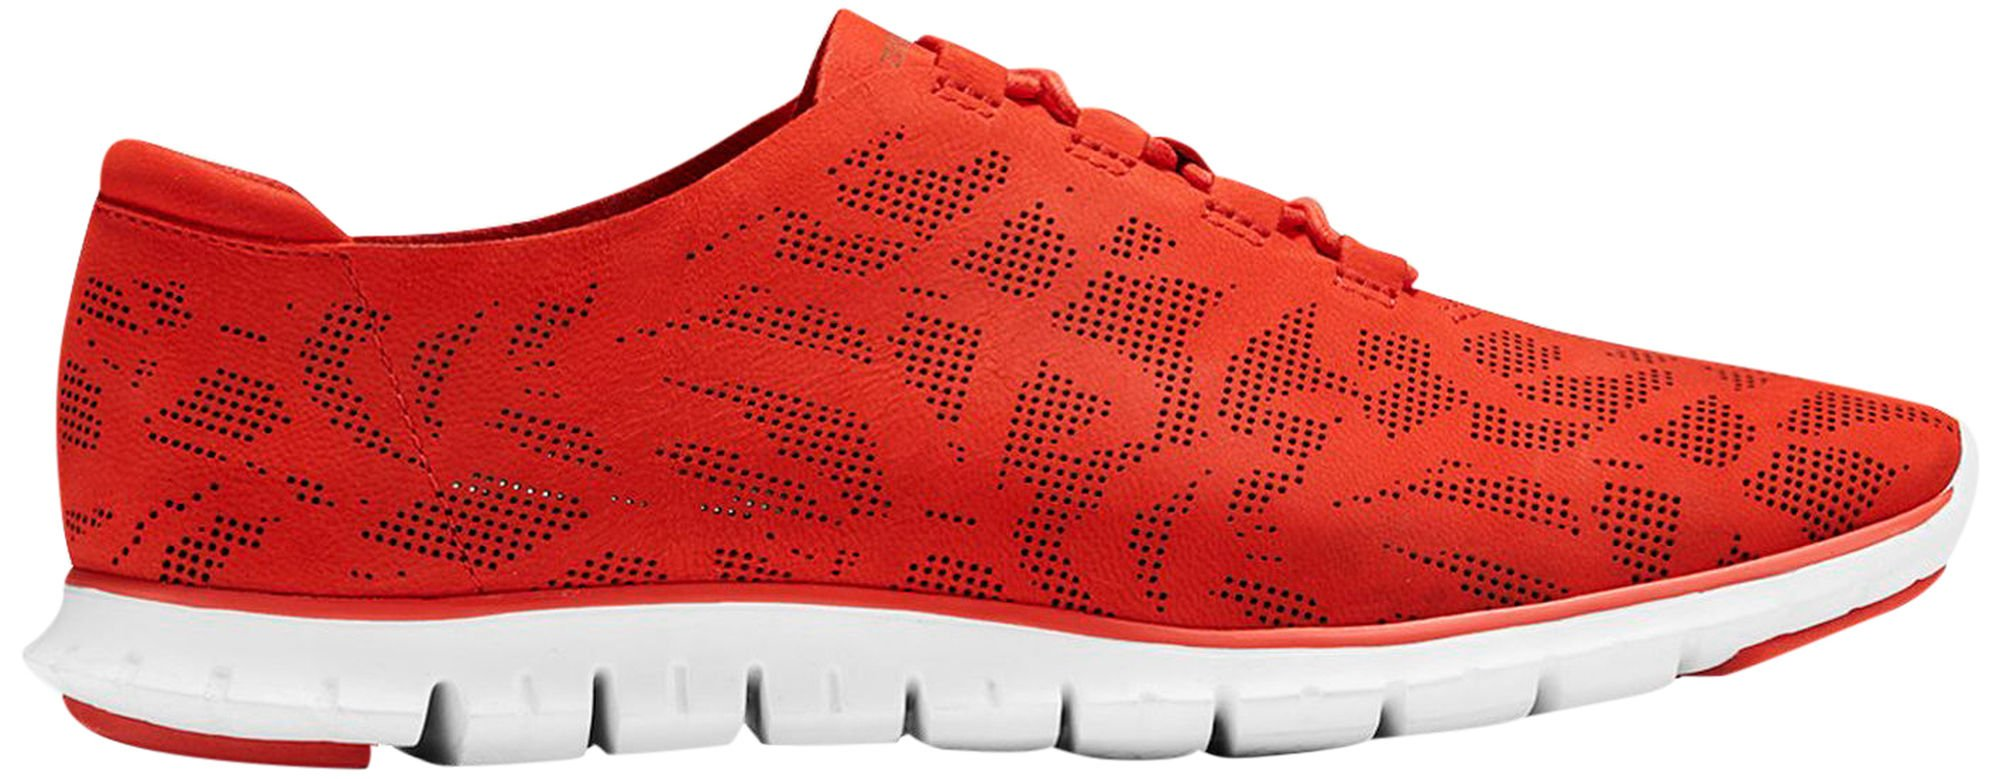 Cole Haan Womens ZEROGRAND Perforated Trainer 8 Firey Red Perf Nubuck-optic White